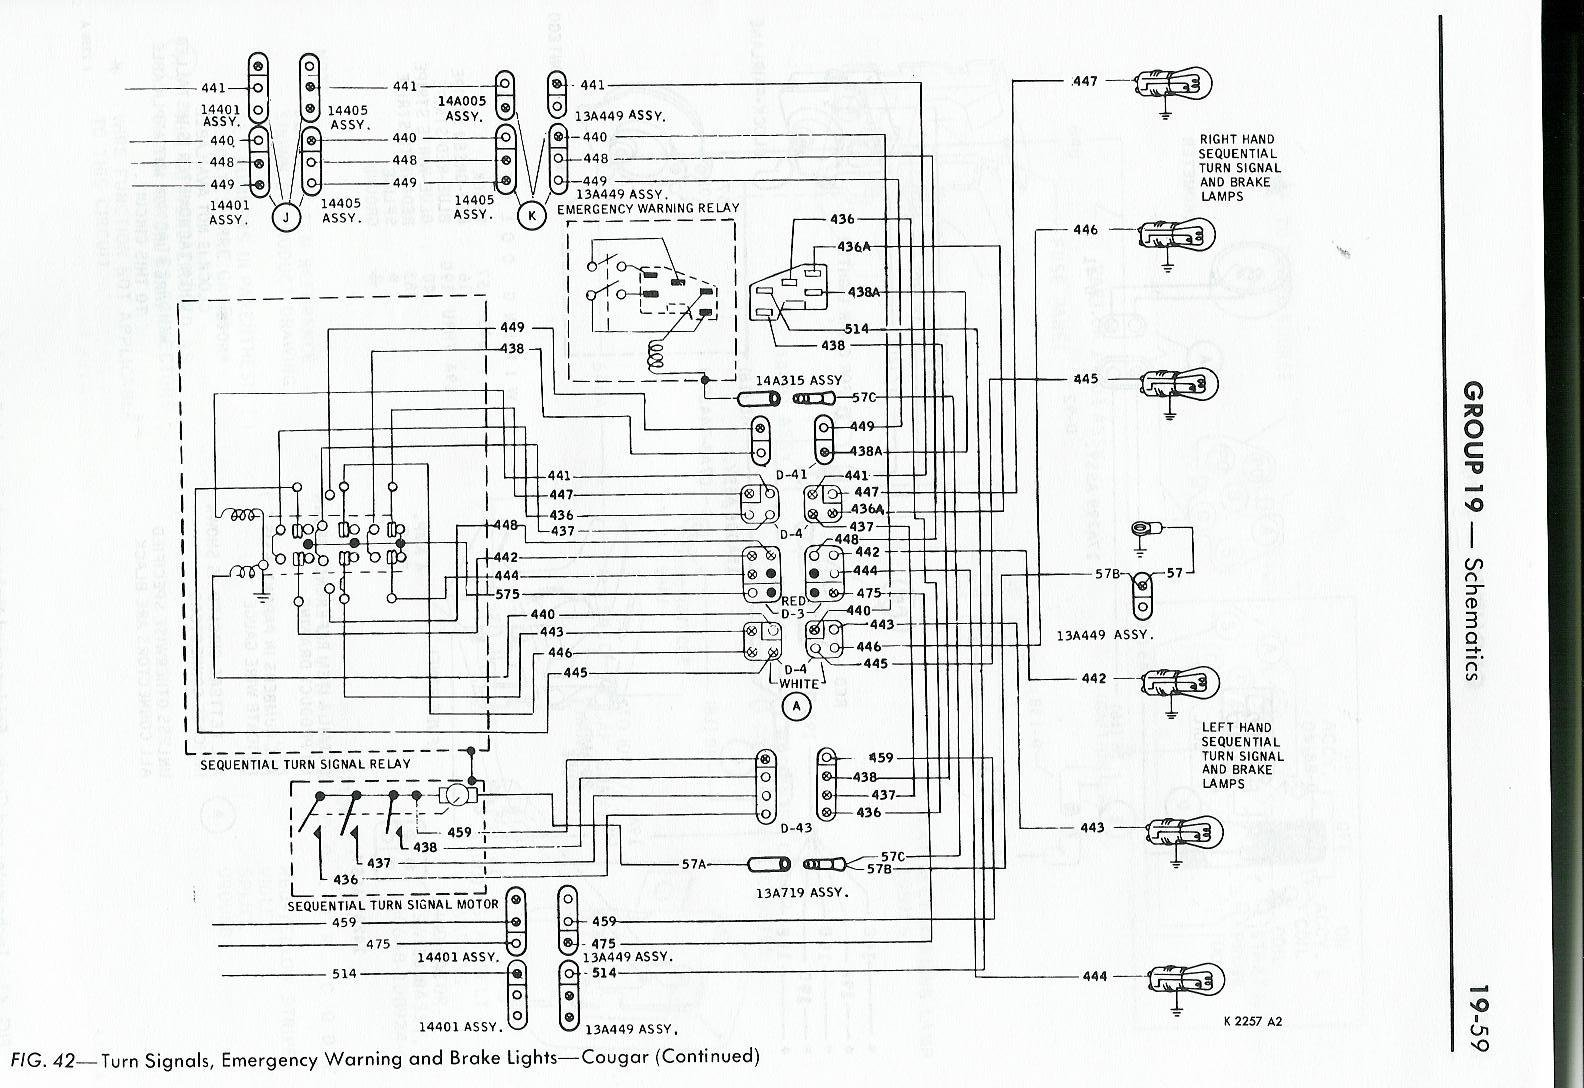 68 Mercury Cougar Wiring Diagram 1968 Ford Pickup Schematic Rh Signaturepedagogies Org Uk Xr7